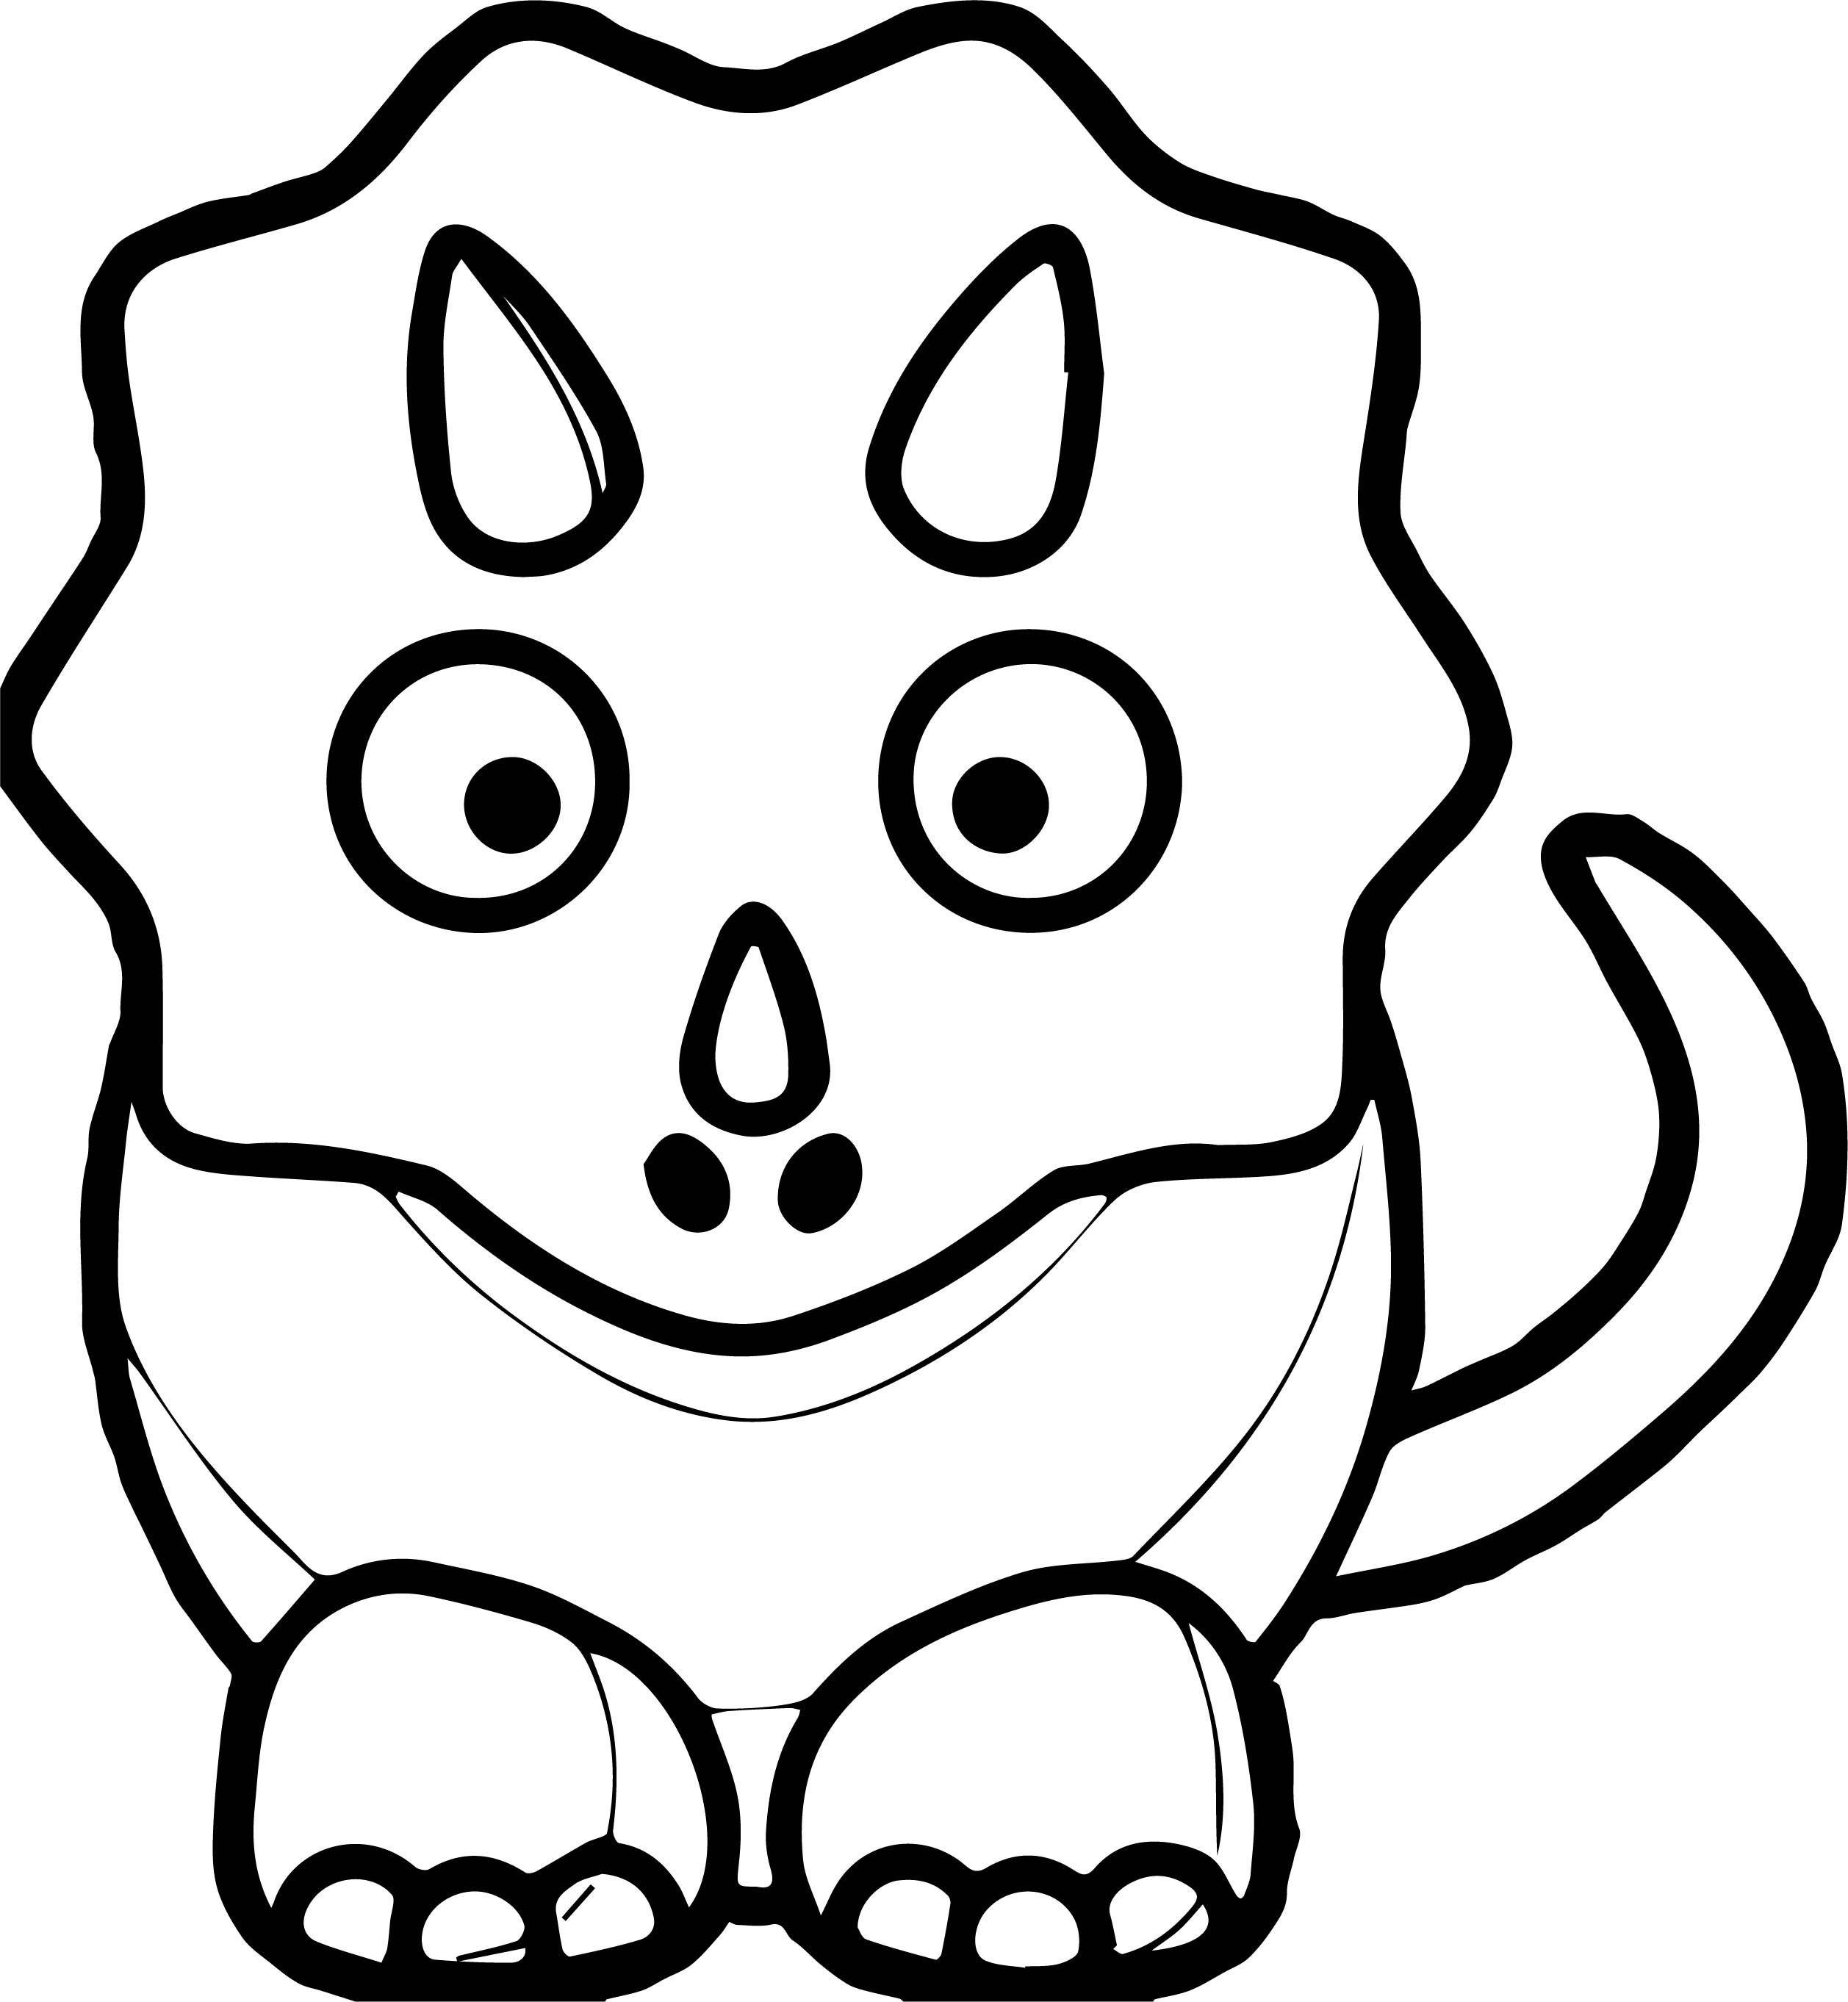 2515x2725 Best Of Black And White Dinosaur Coloring Pages Design Great